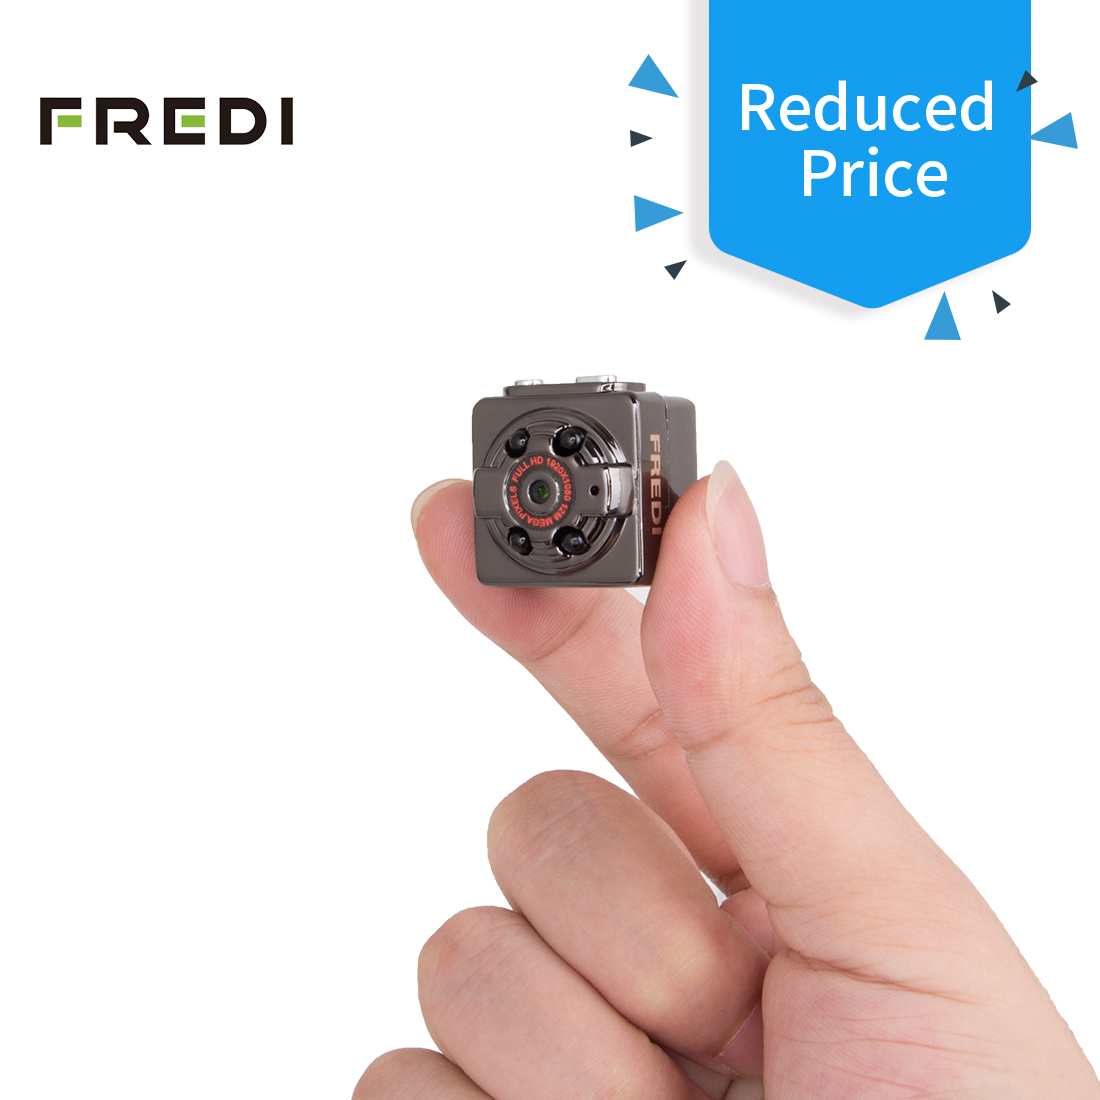 How to install spy camera in bathroom - Fredi Hd 1080p Indoor Outdoor Sport Portable Handheld Mini Hidden Spy Camera Dv Voice Video